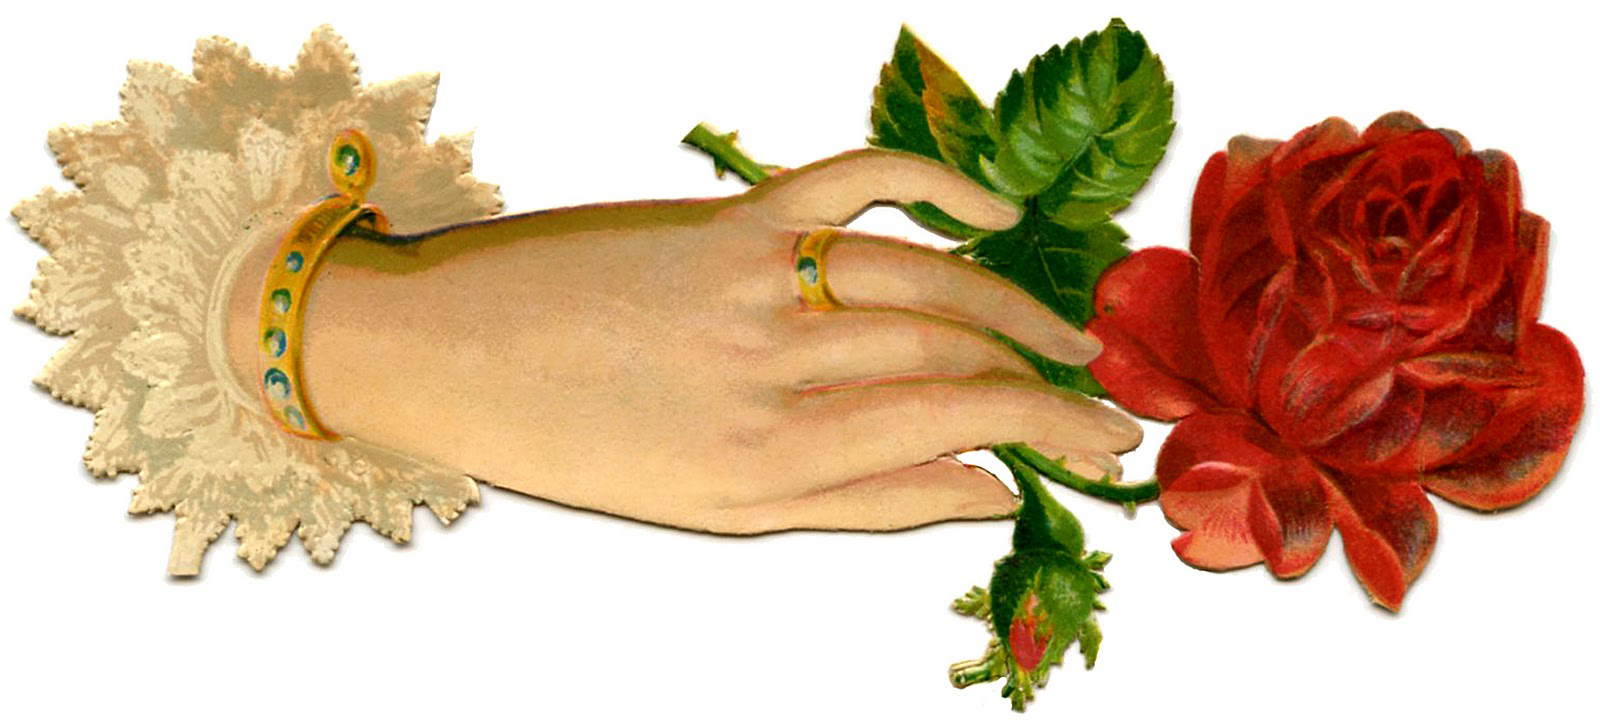 hand+with+rose+vintage+Image+GraphicsFairy11b